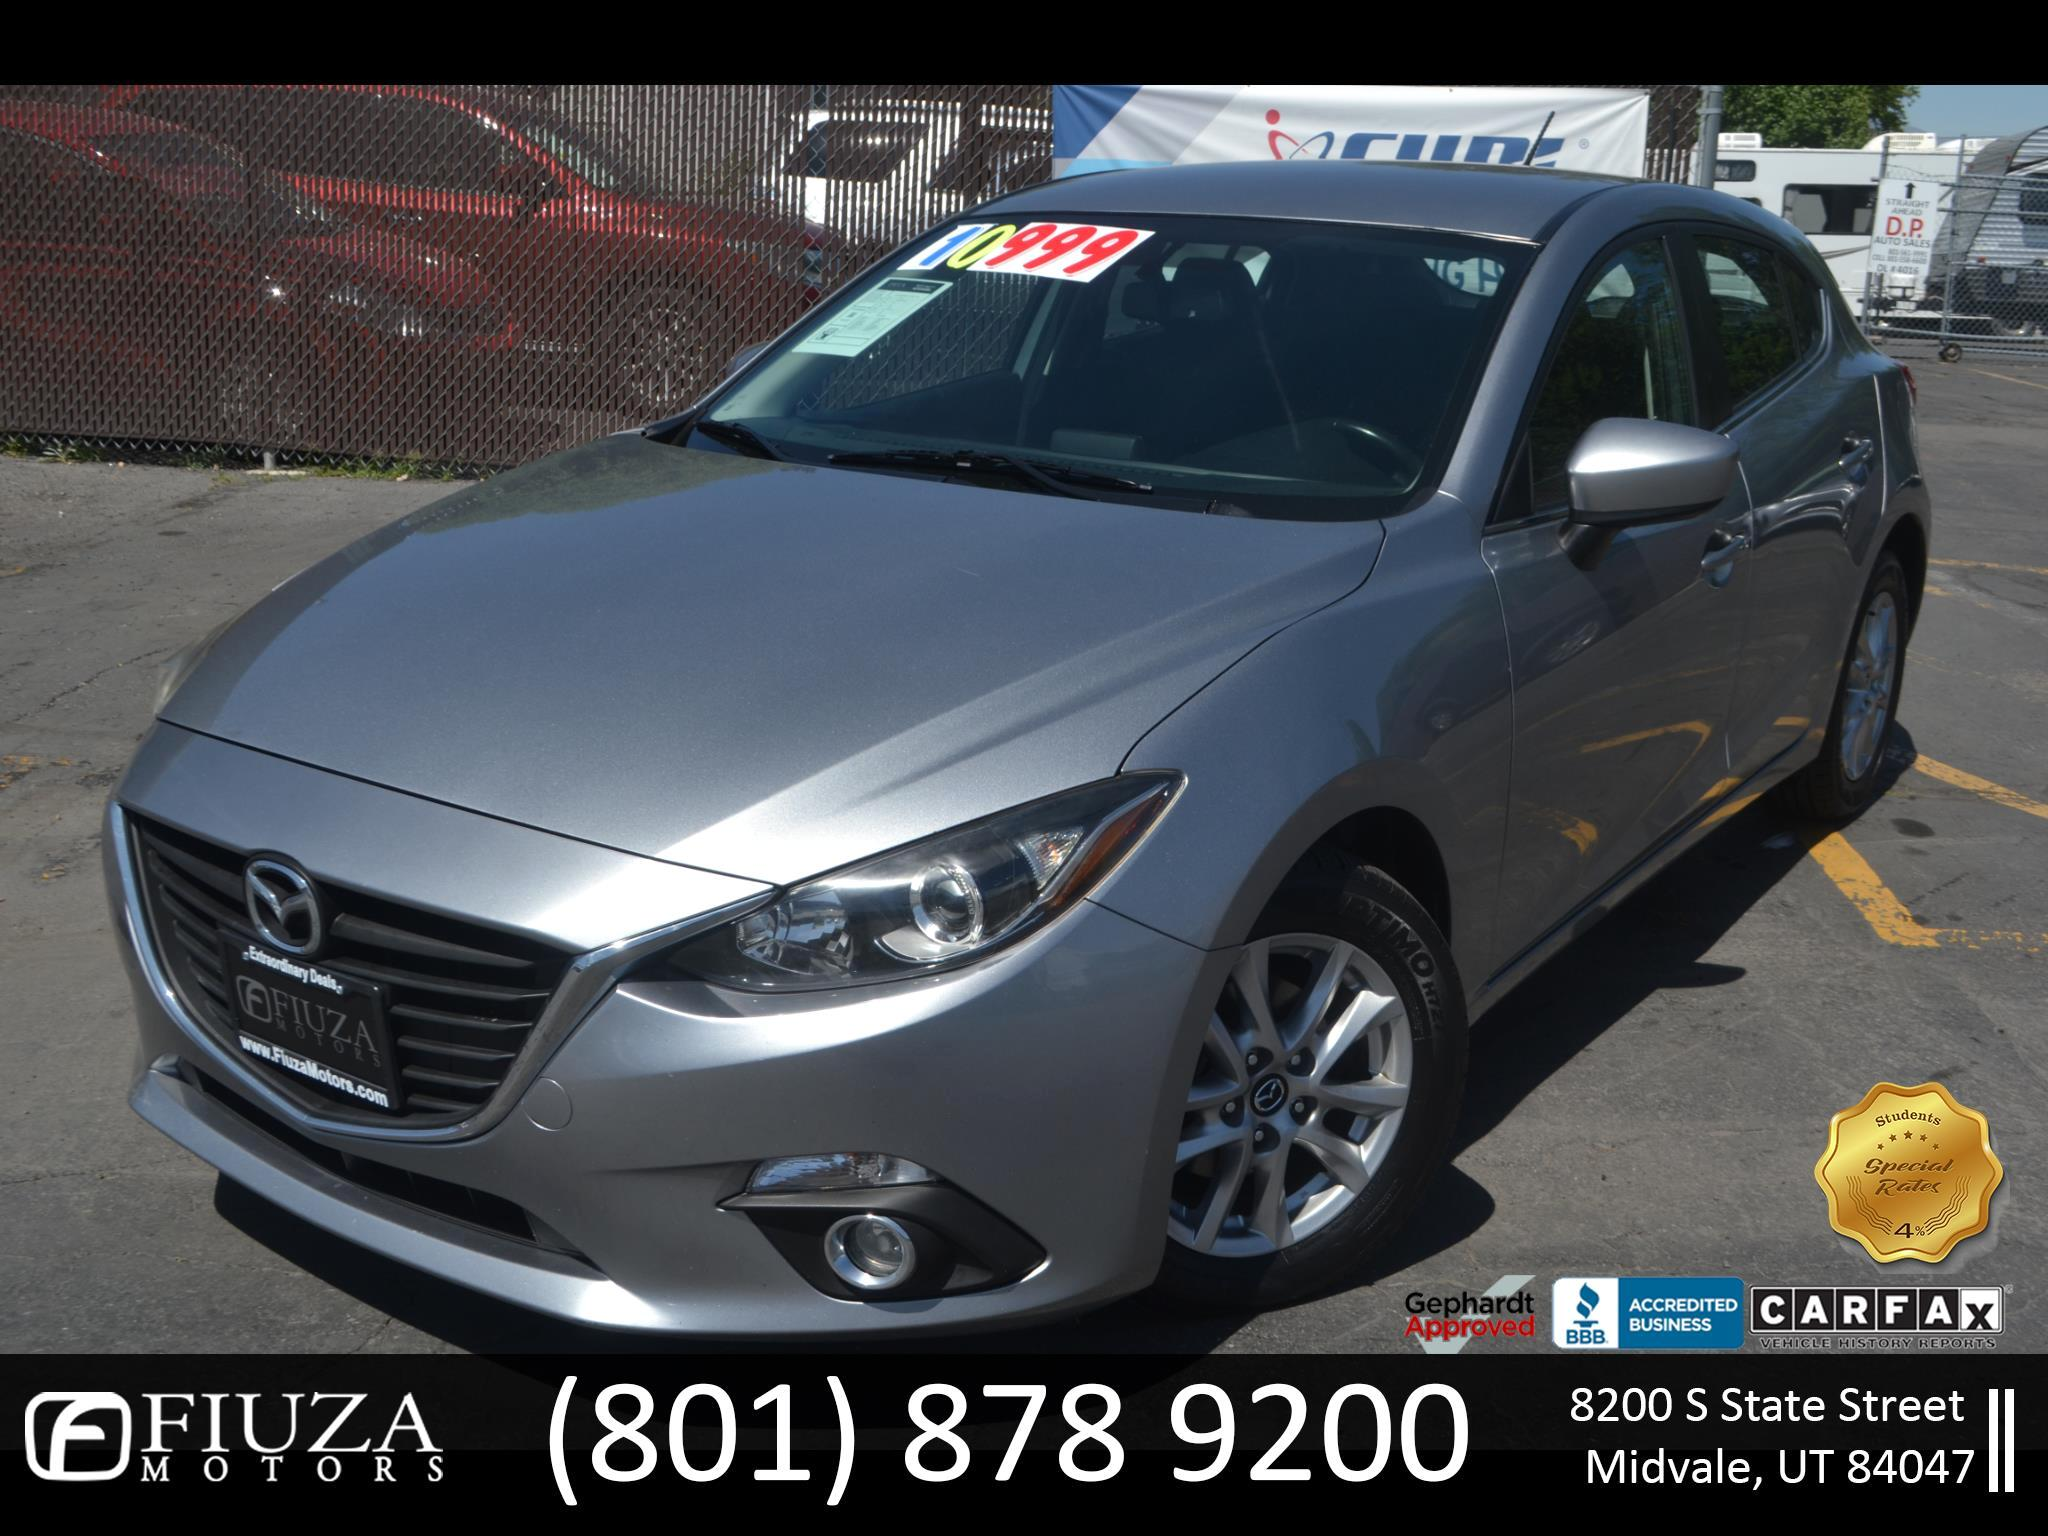 2014 Mazda MAZDA3 i Touring AT 5-Door